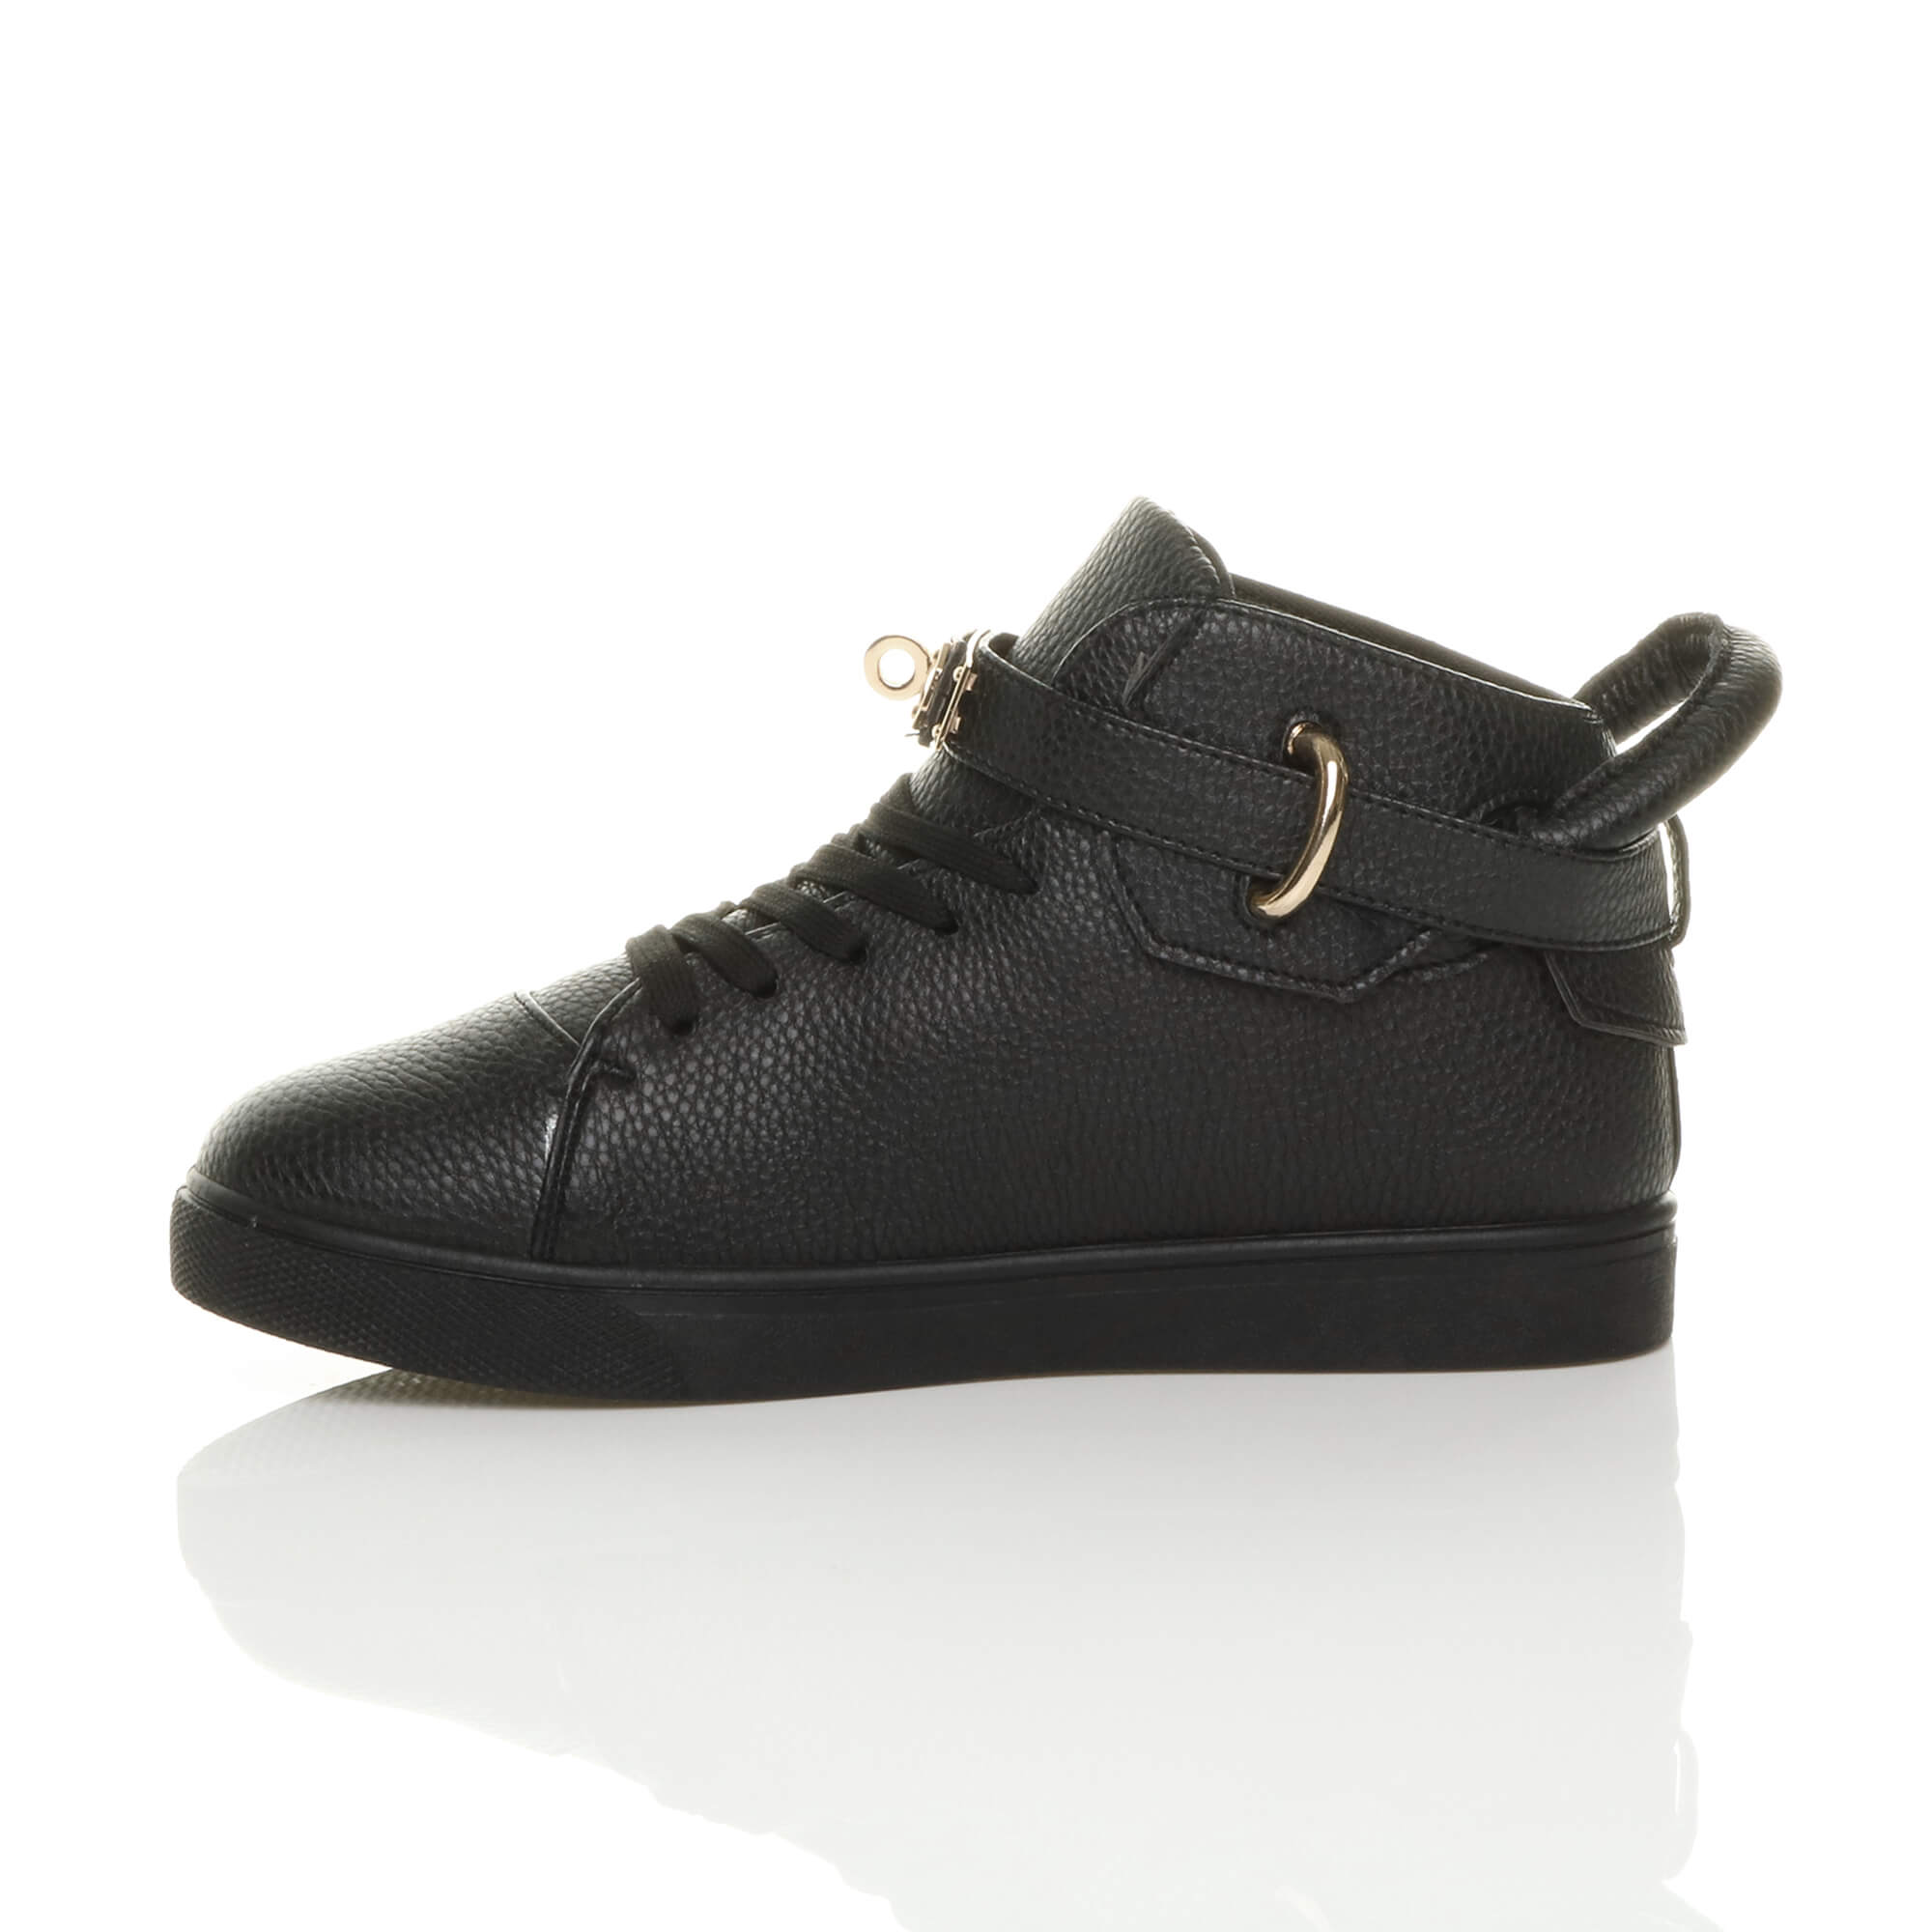 WOMENS LADIES FLAT LACE UP HI HIGH TOP ANKLE TRAINERS BOOTS SHOES SNEAKERS SIZE